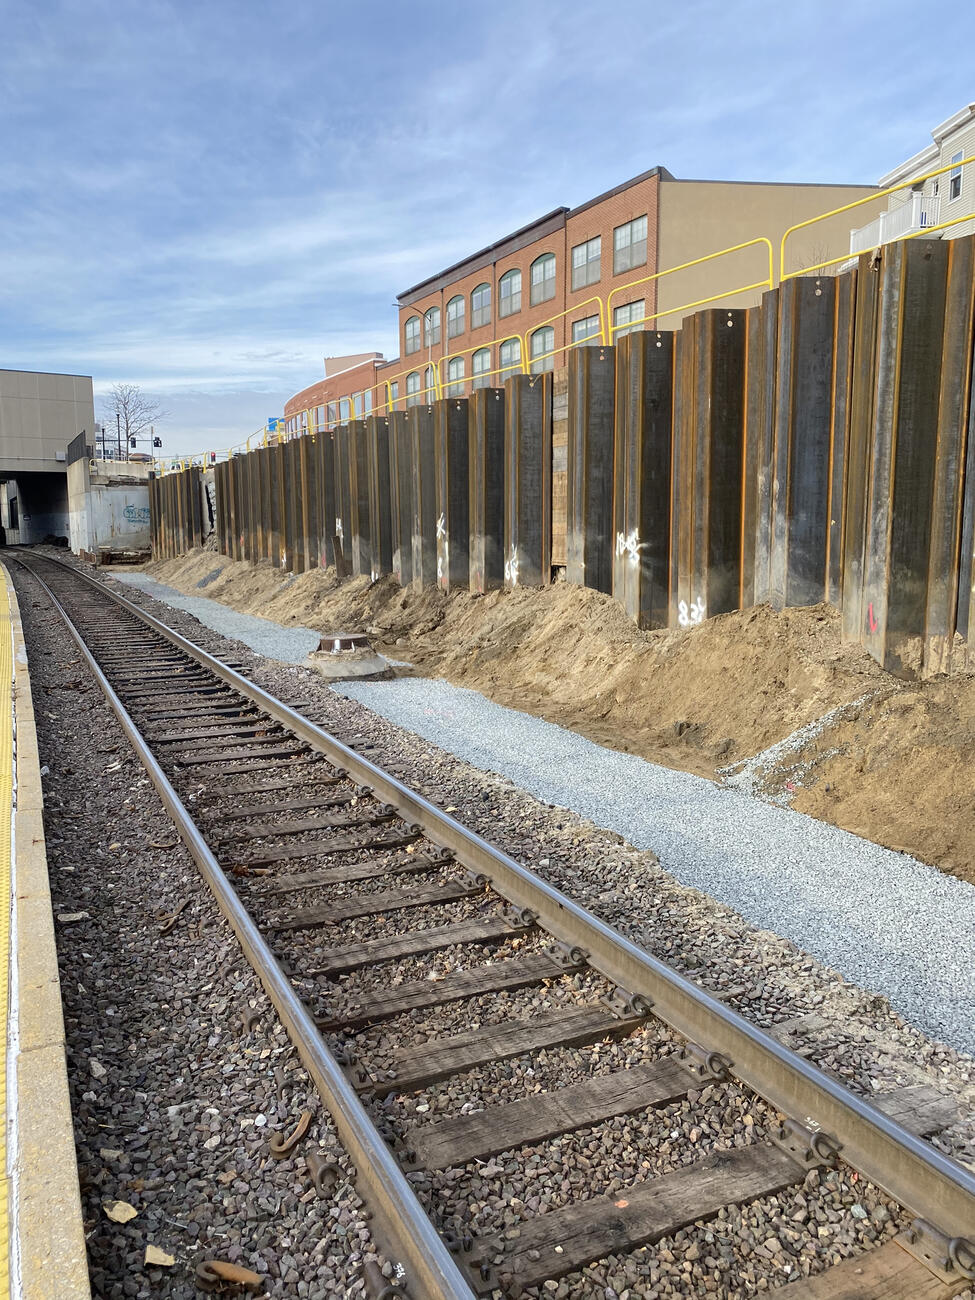 A picture of the construction work taken from the station platform. The tracks are in the foreground and large, tall metal sheets have been installed next to the wall to stabilize it.